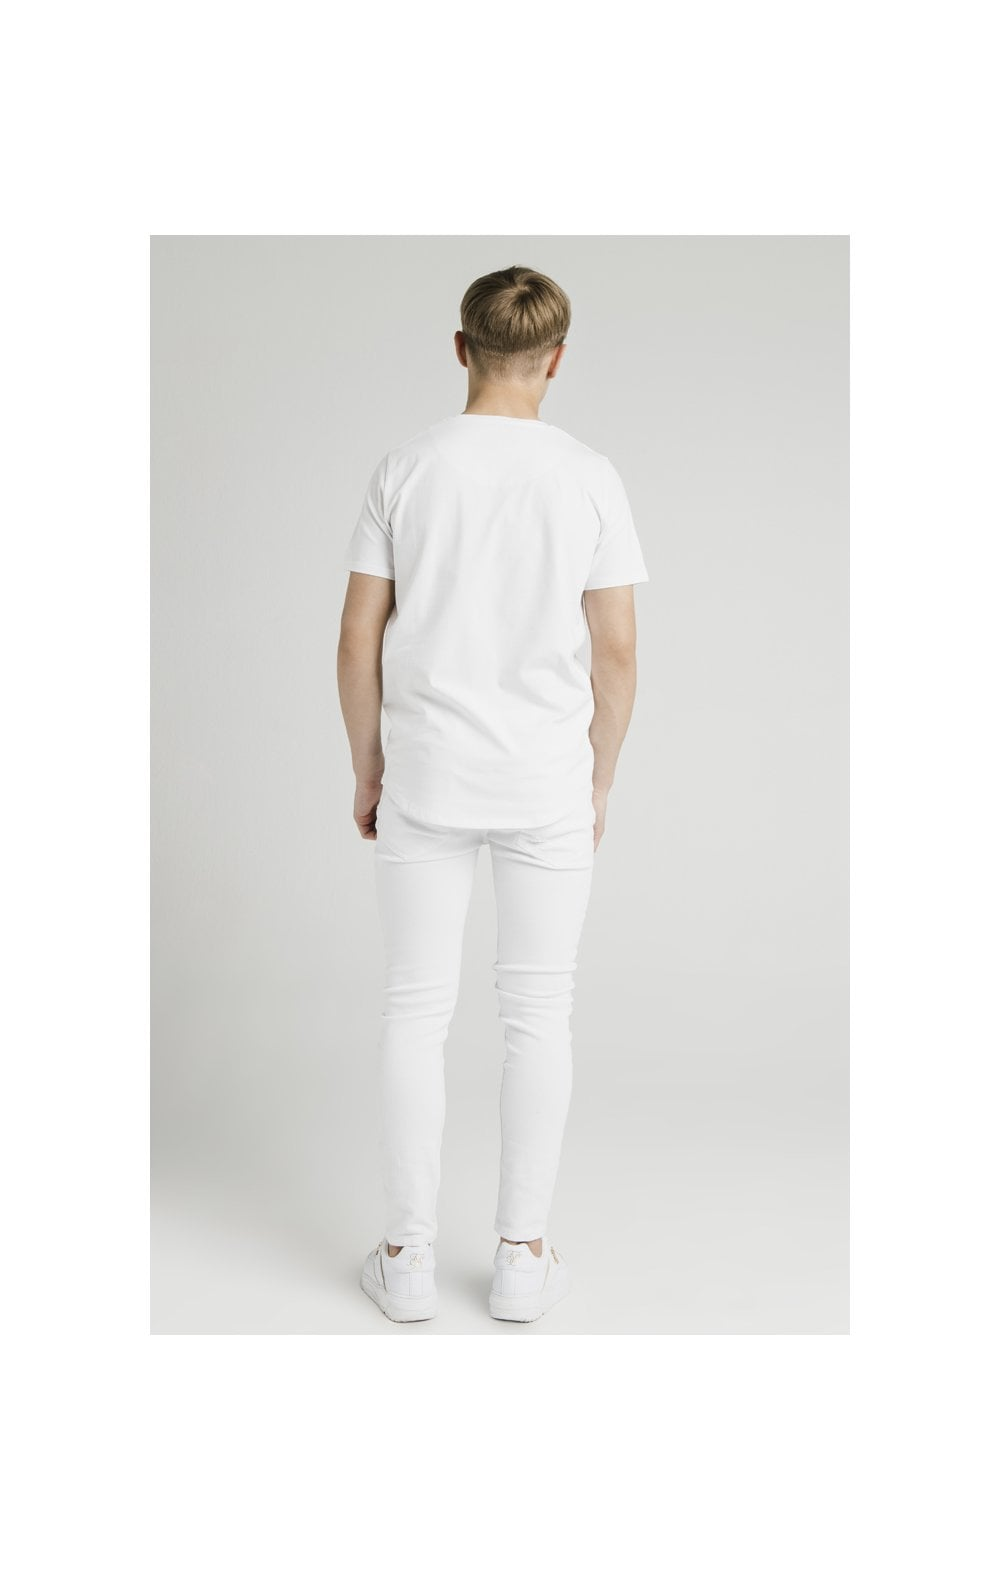 Illusive London Curved Hem Tee - White (7)